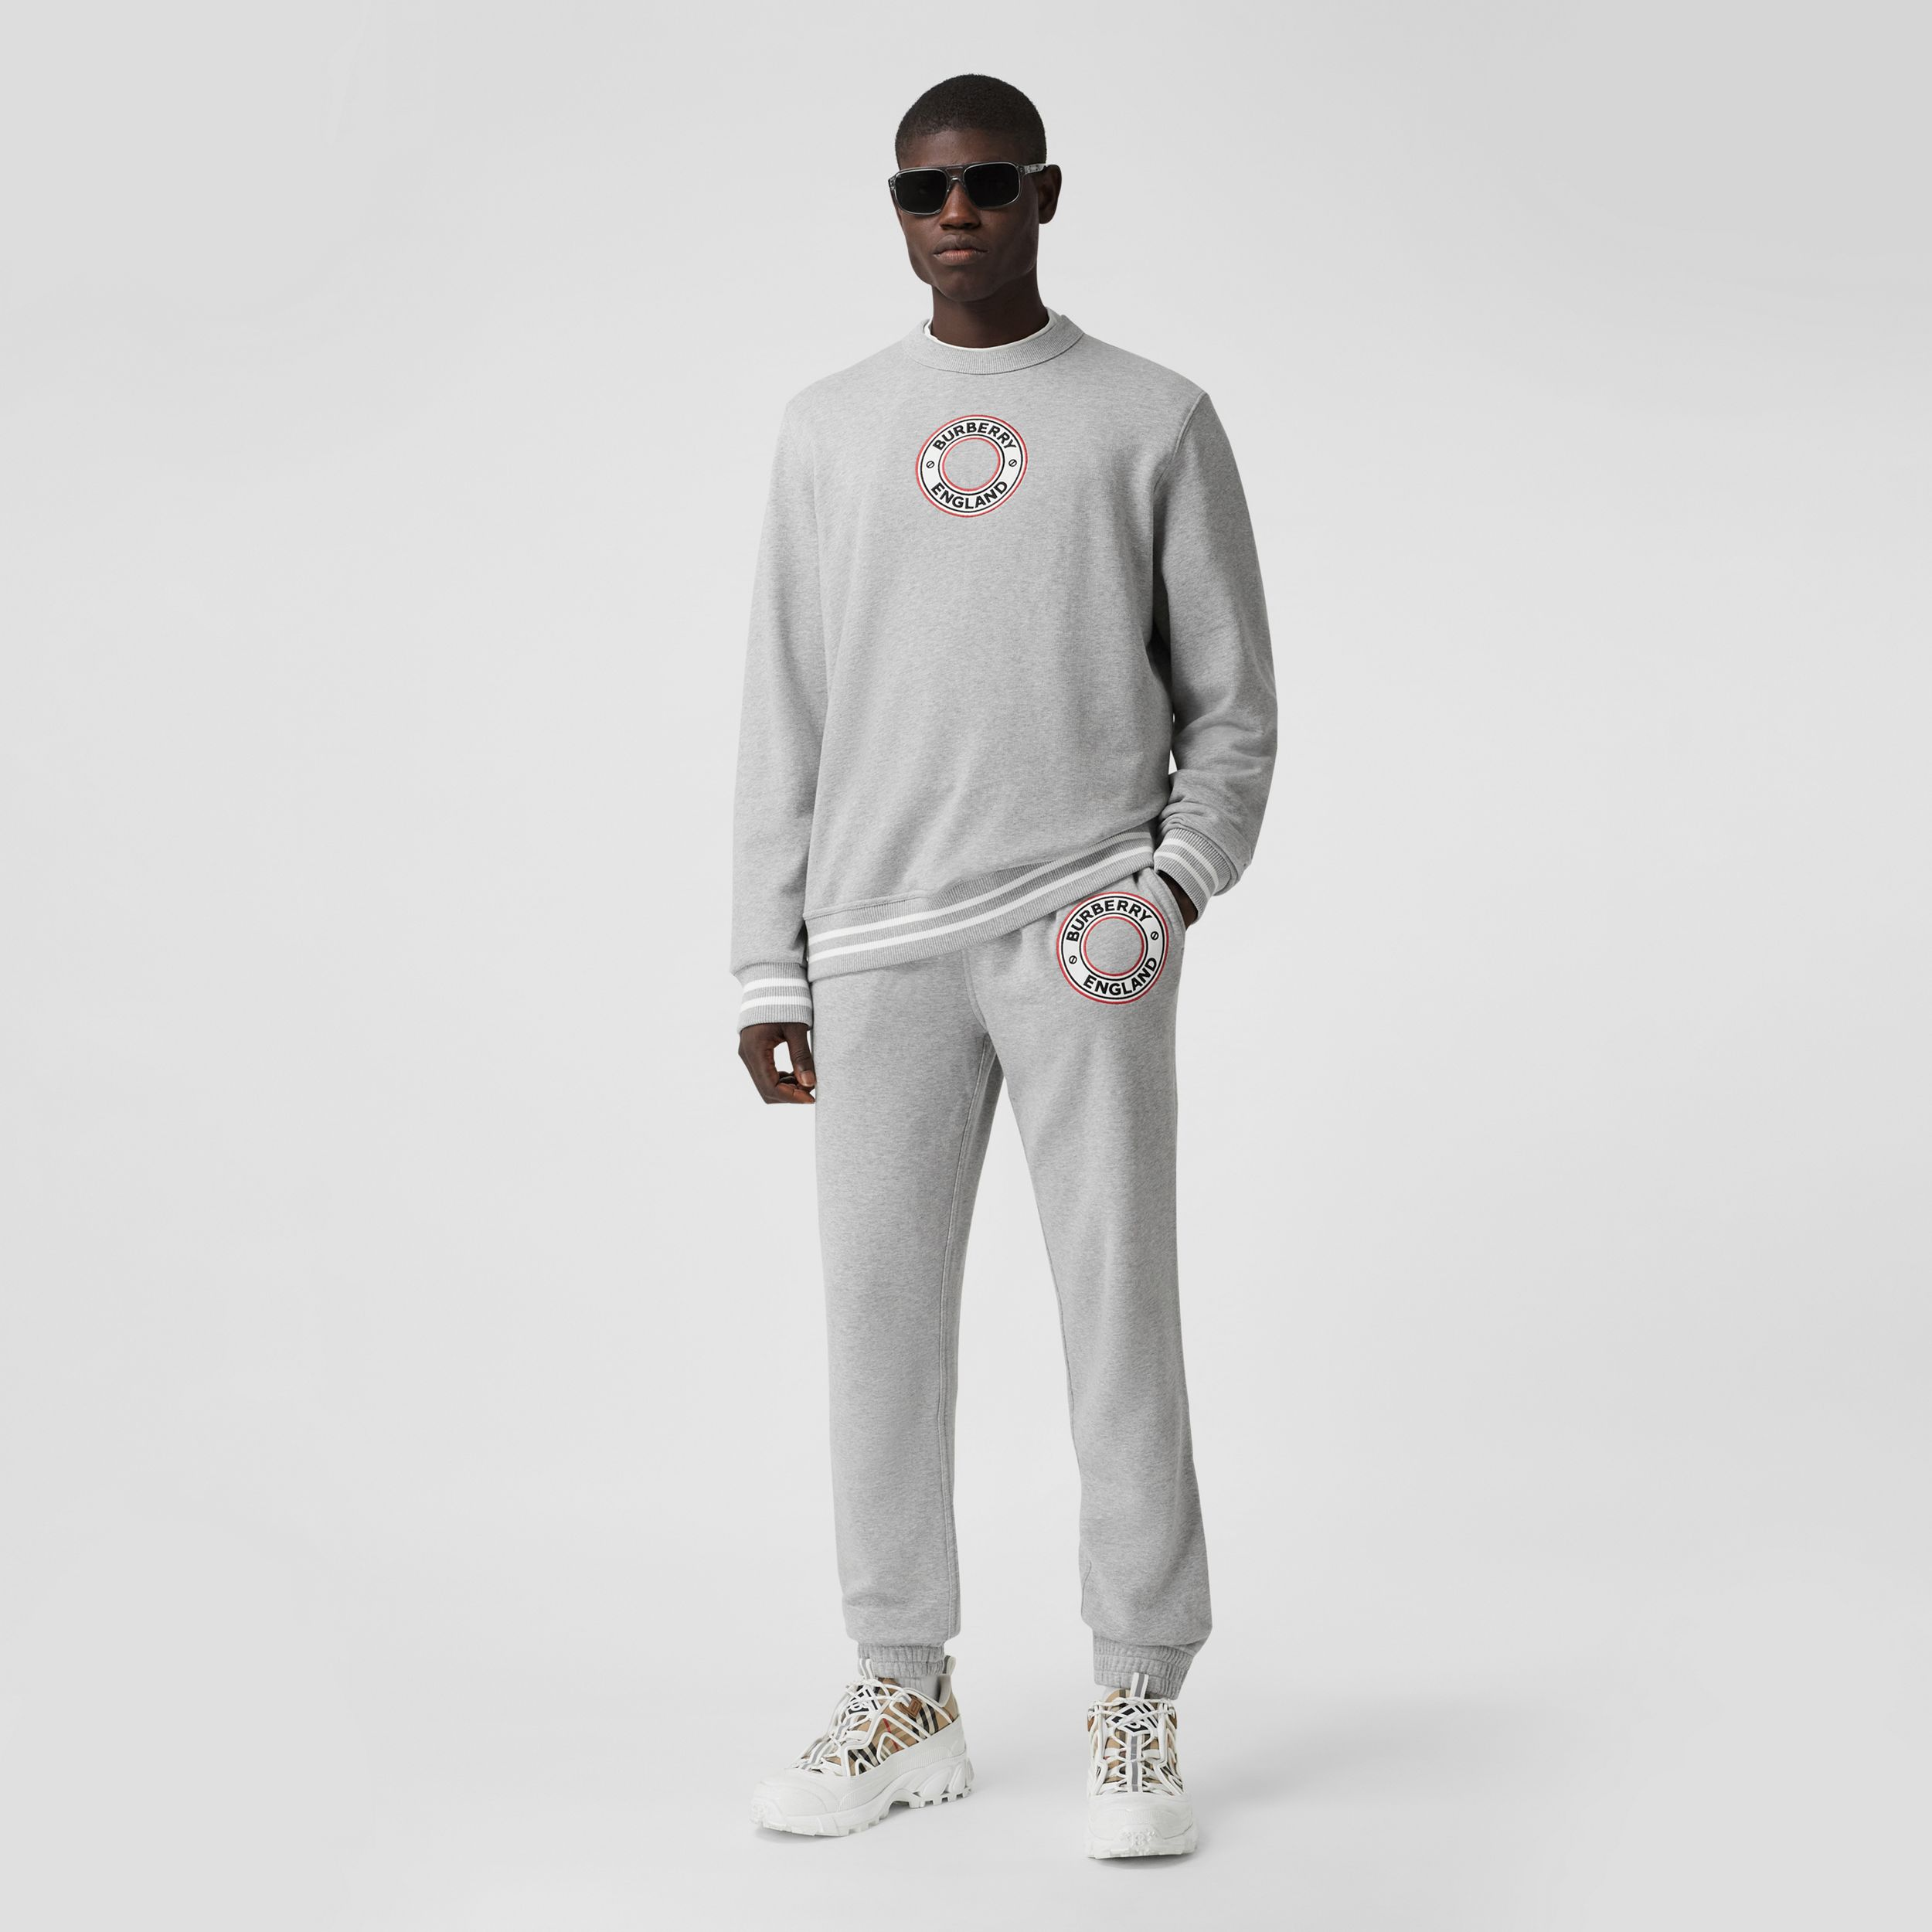 Logo Graphic Appliqué Cotton Jogging Pants in Pale Grey Melange - Men | Burberry - 1